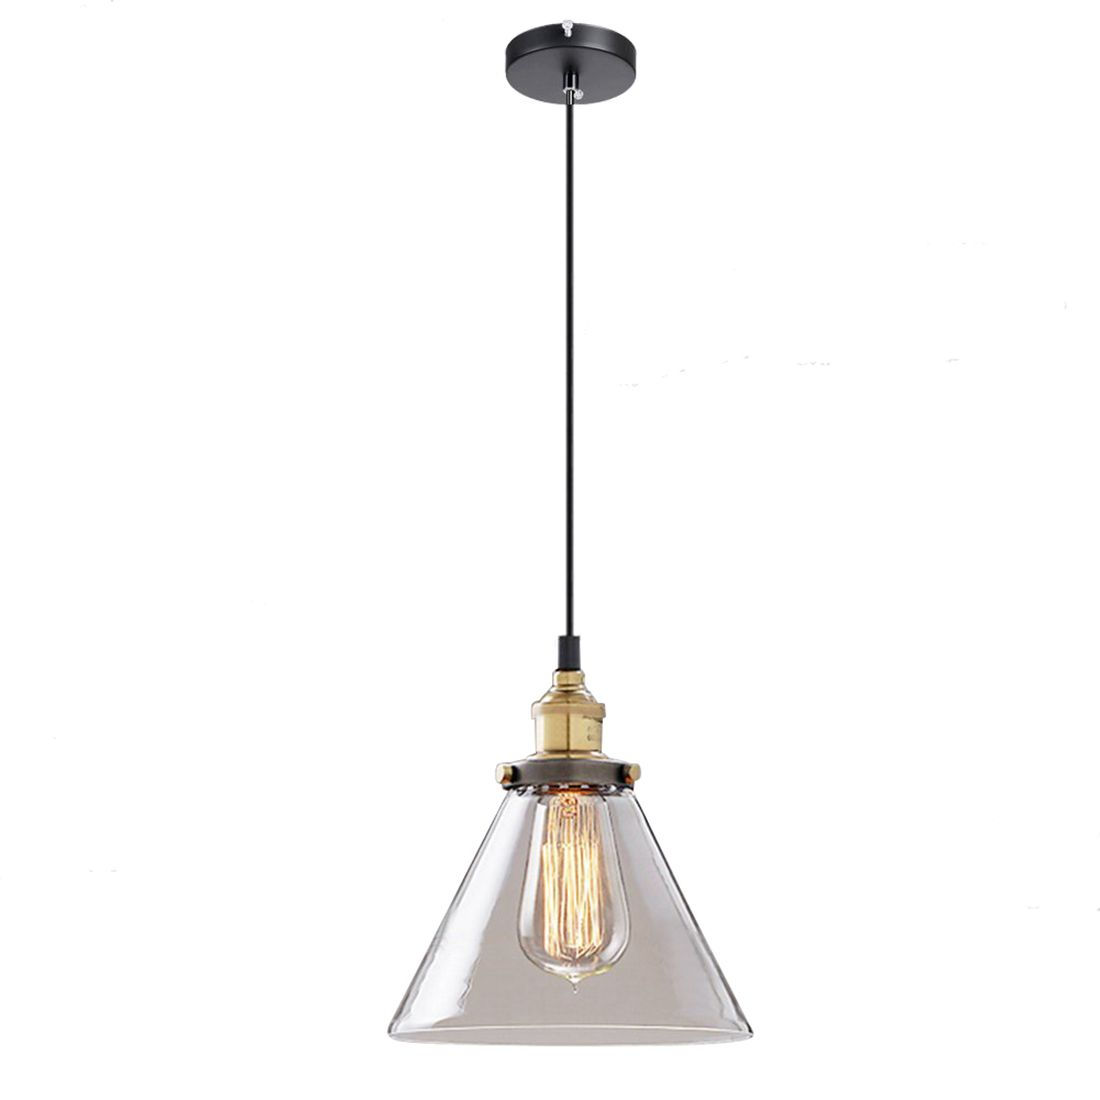 "8.7"" Clear Glass Fixture Vintage Industrial Pendant Lamp Fixture Hanging Light diameter 18cm"